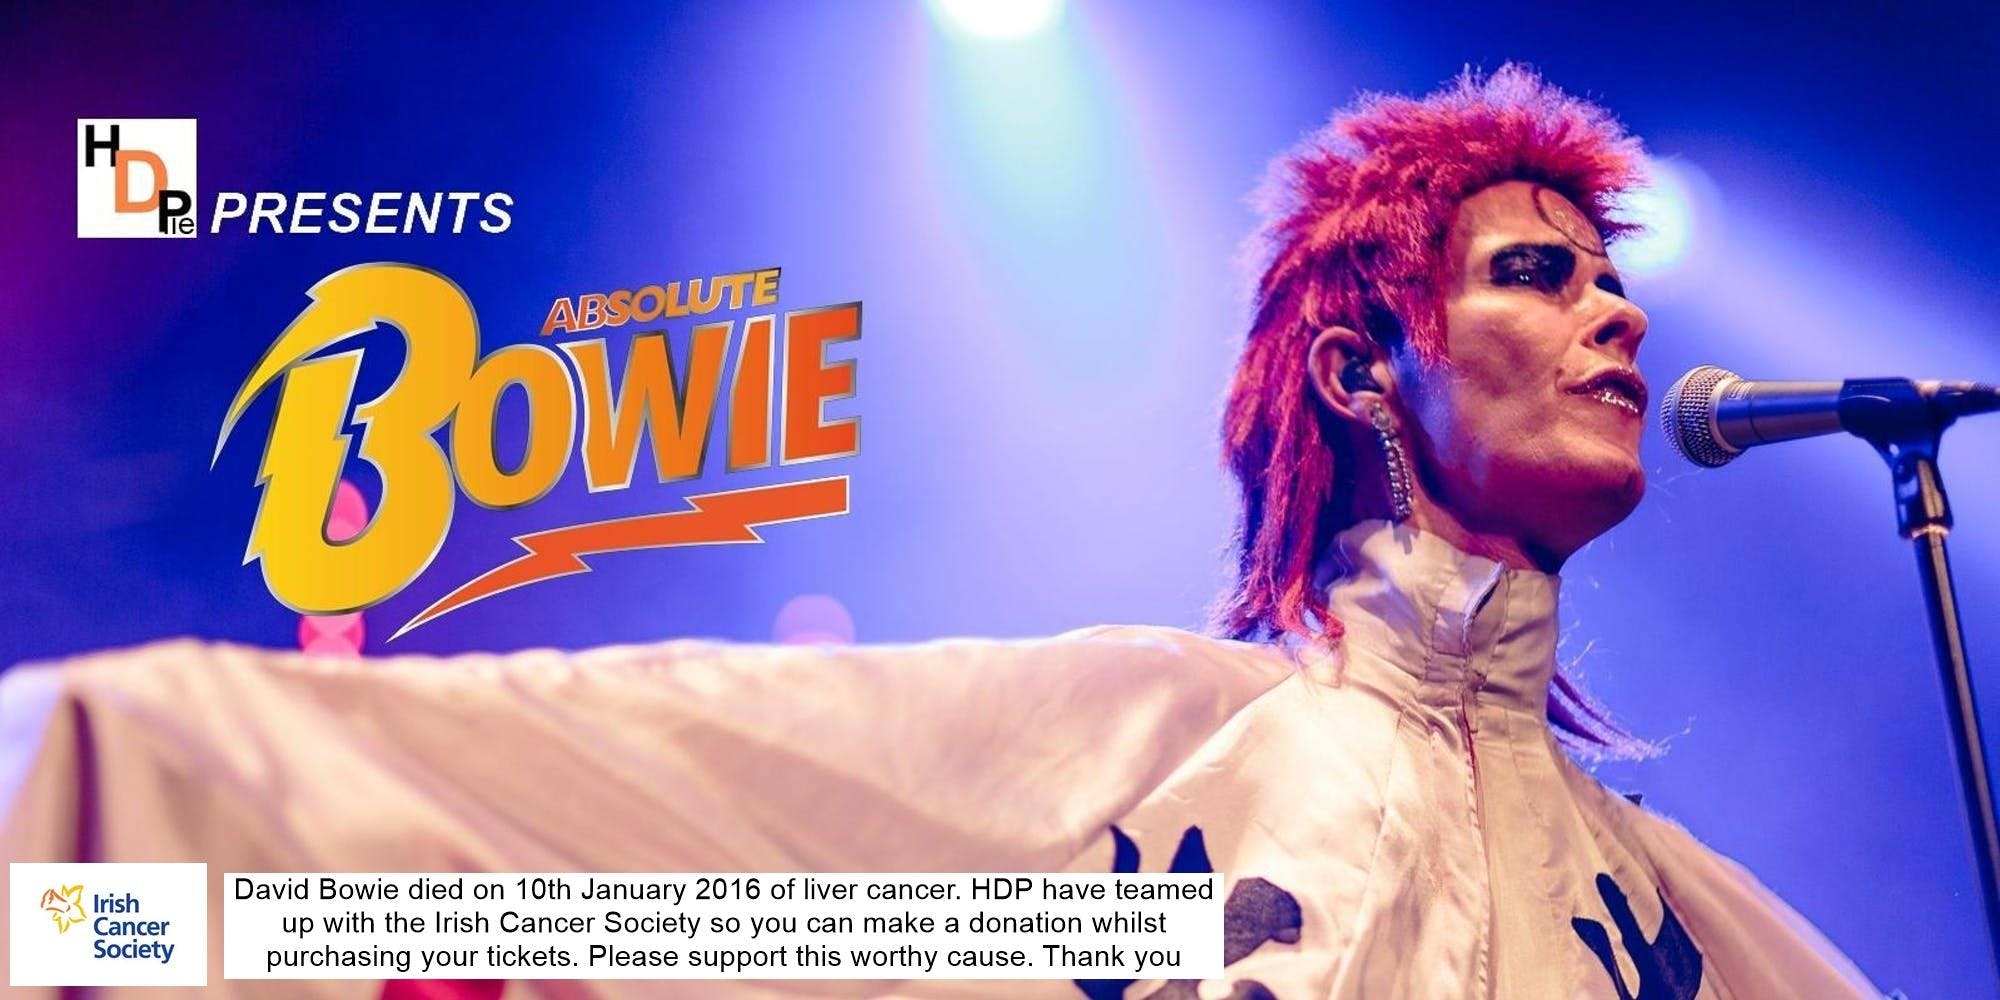 Absolute Bowie  Europe's Finest David Bowie Tribute